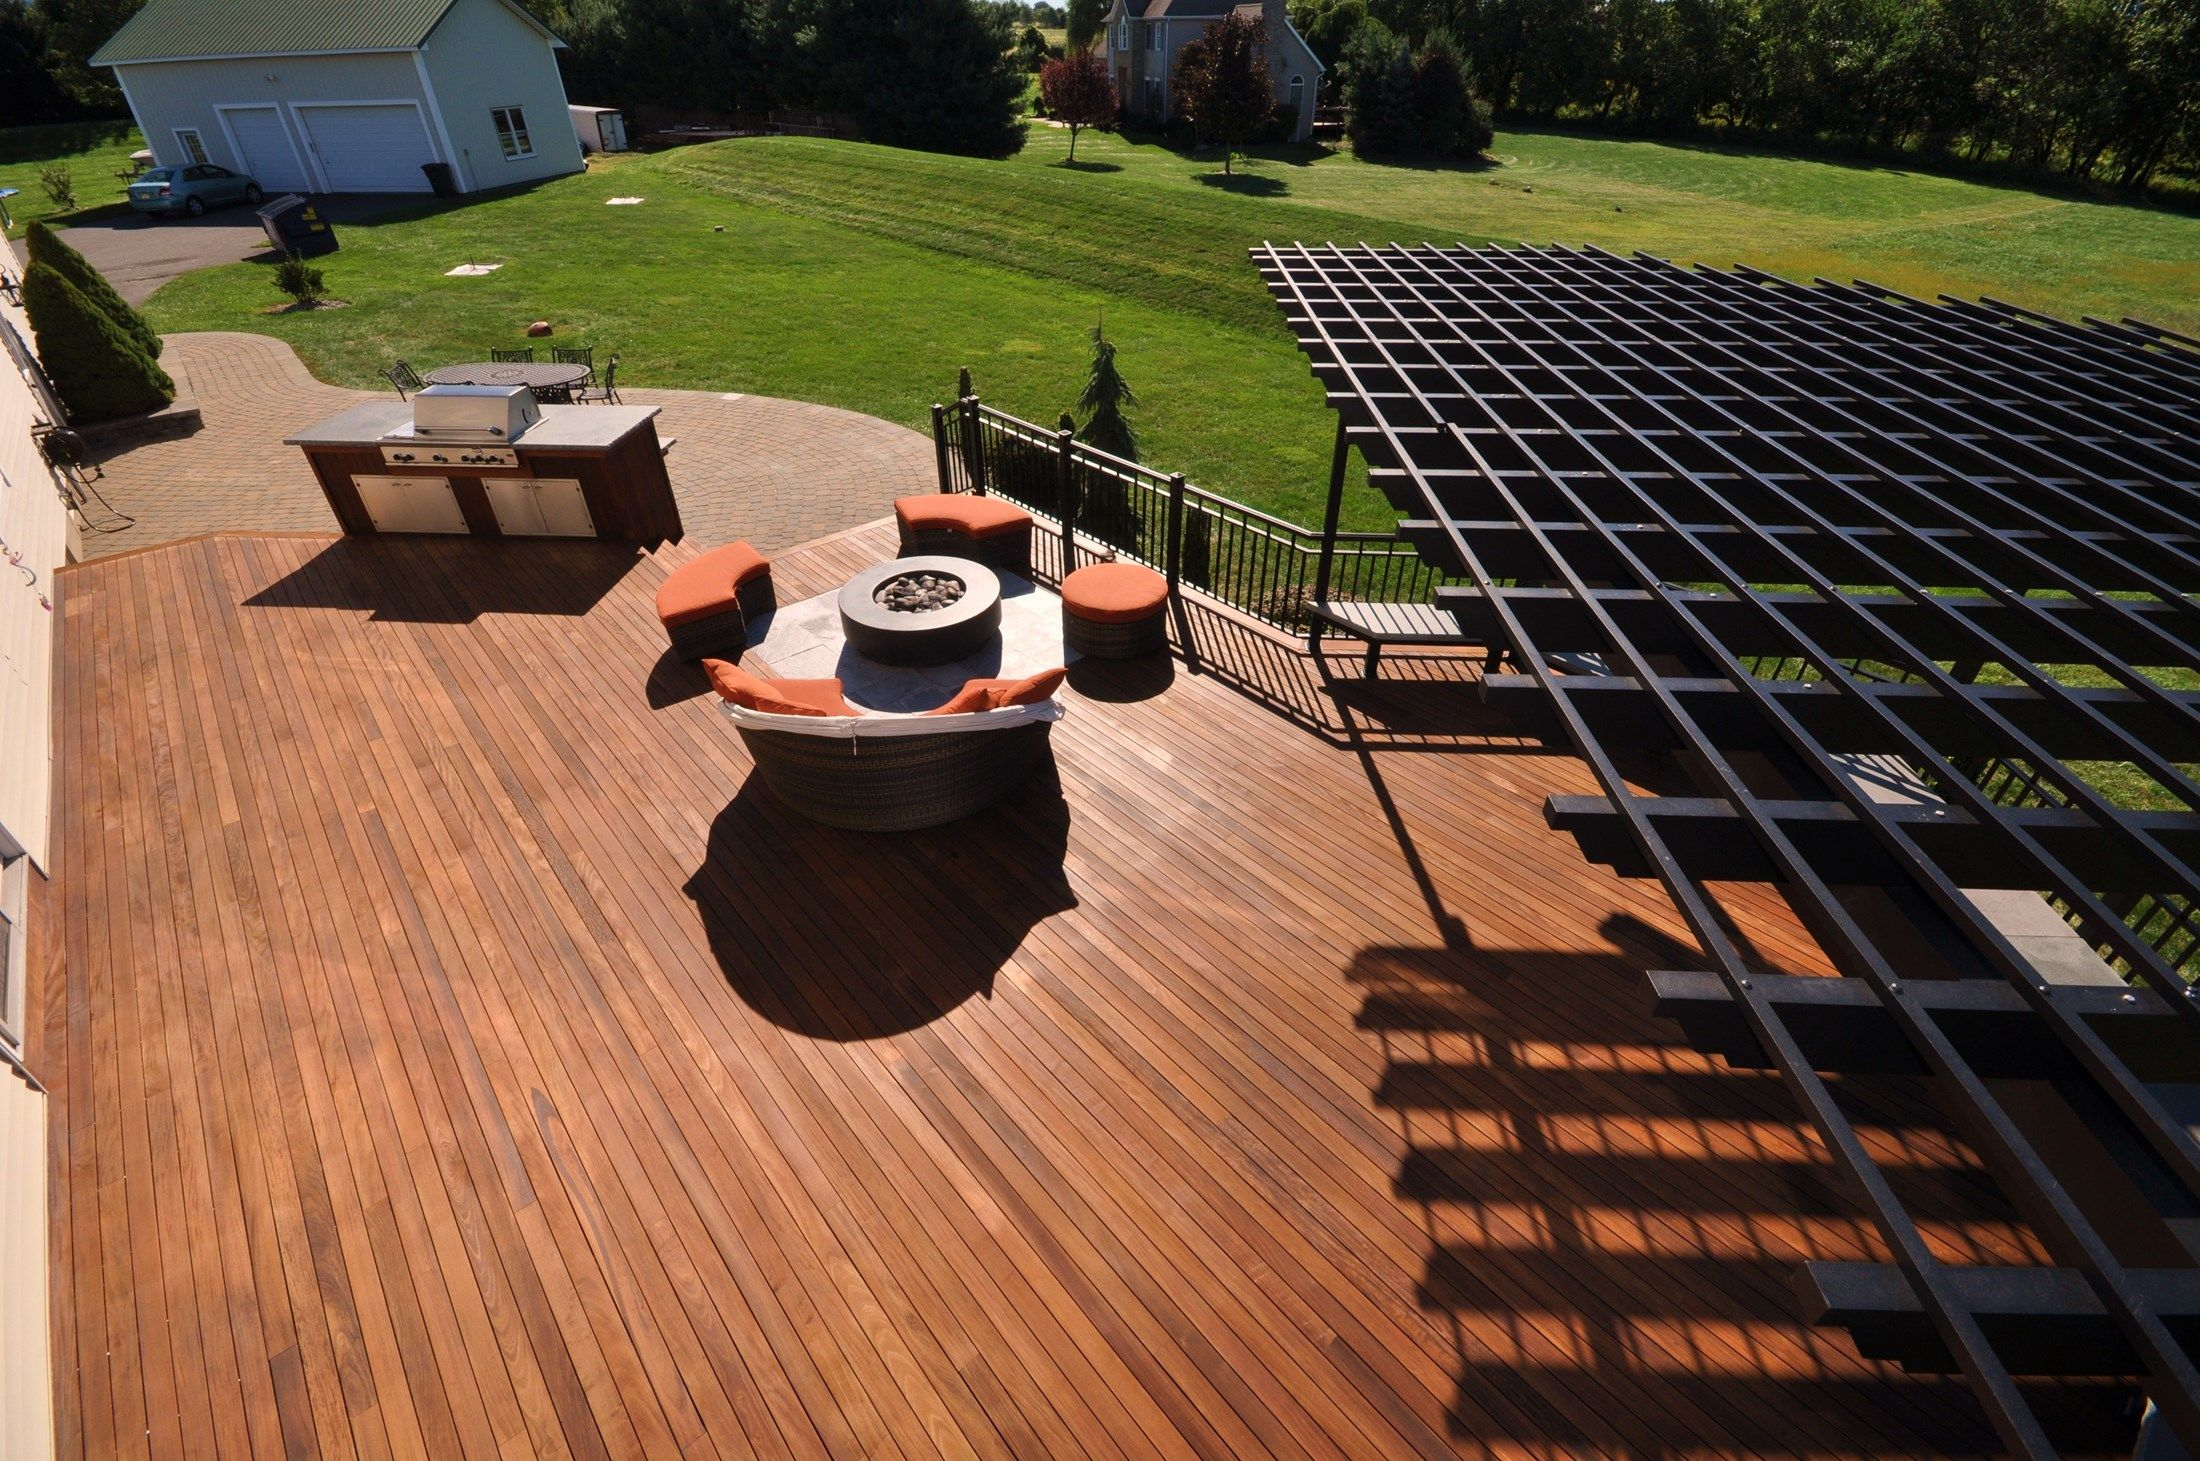 Ipe' Deck in Flemington NJ - Picture 1334